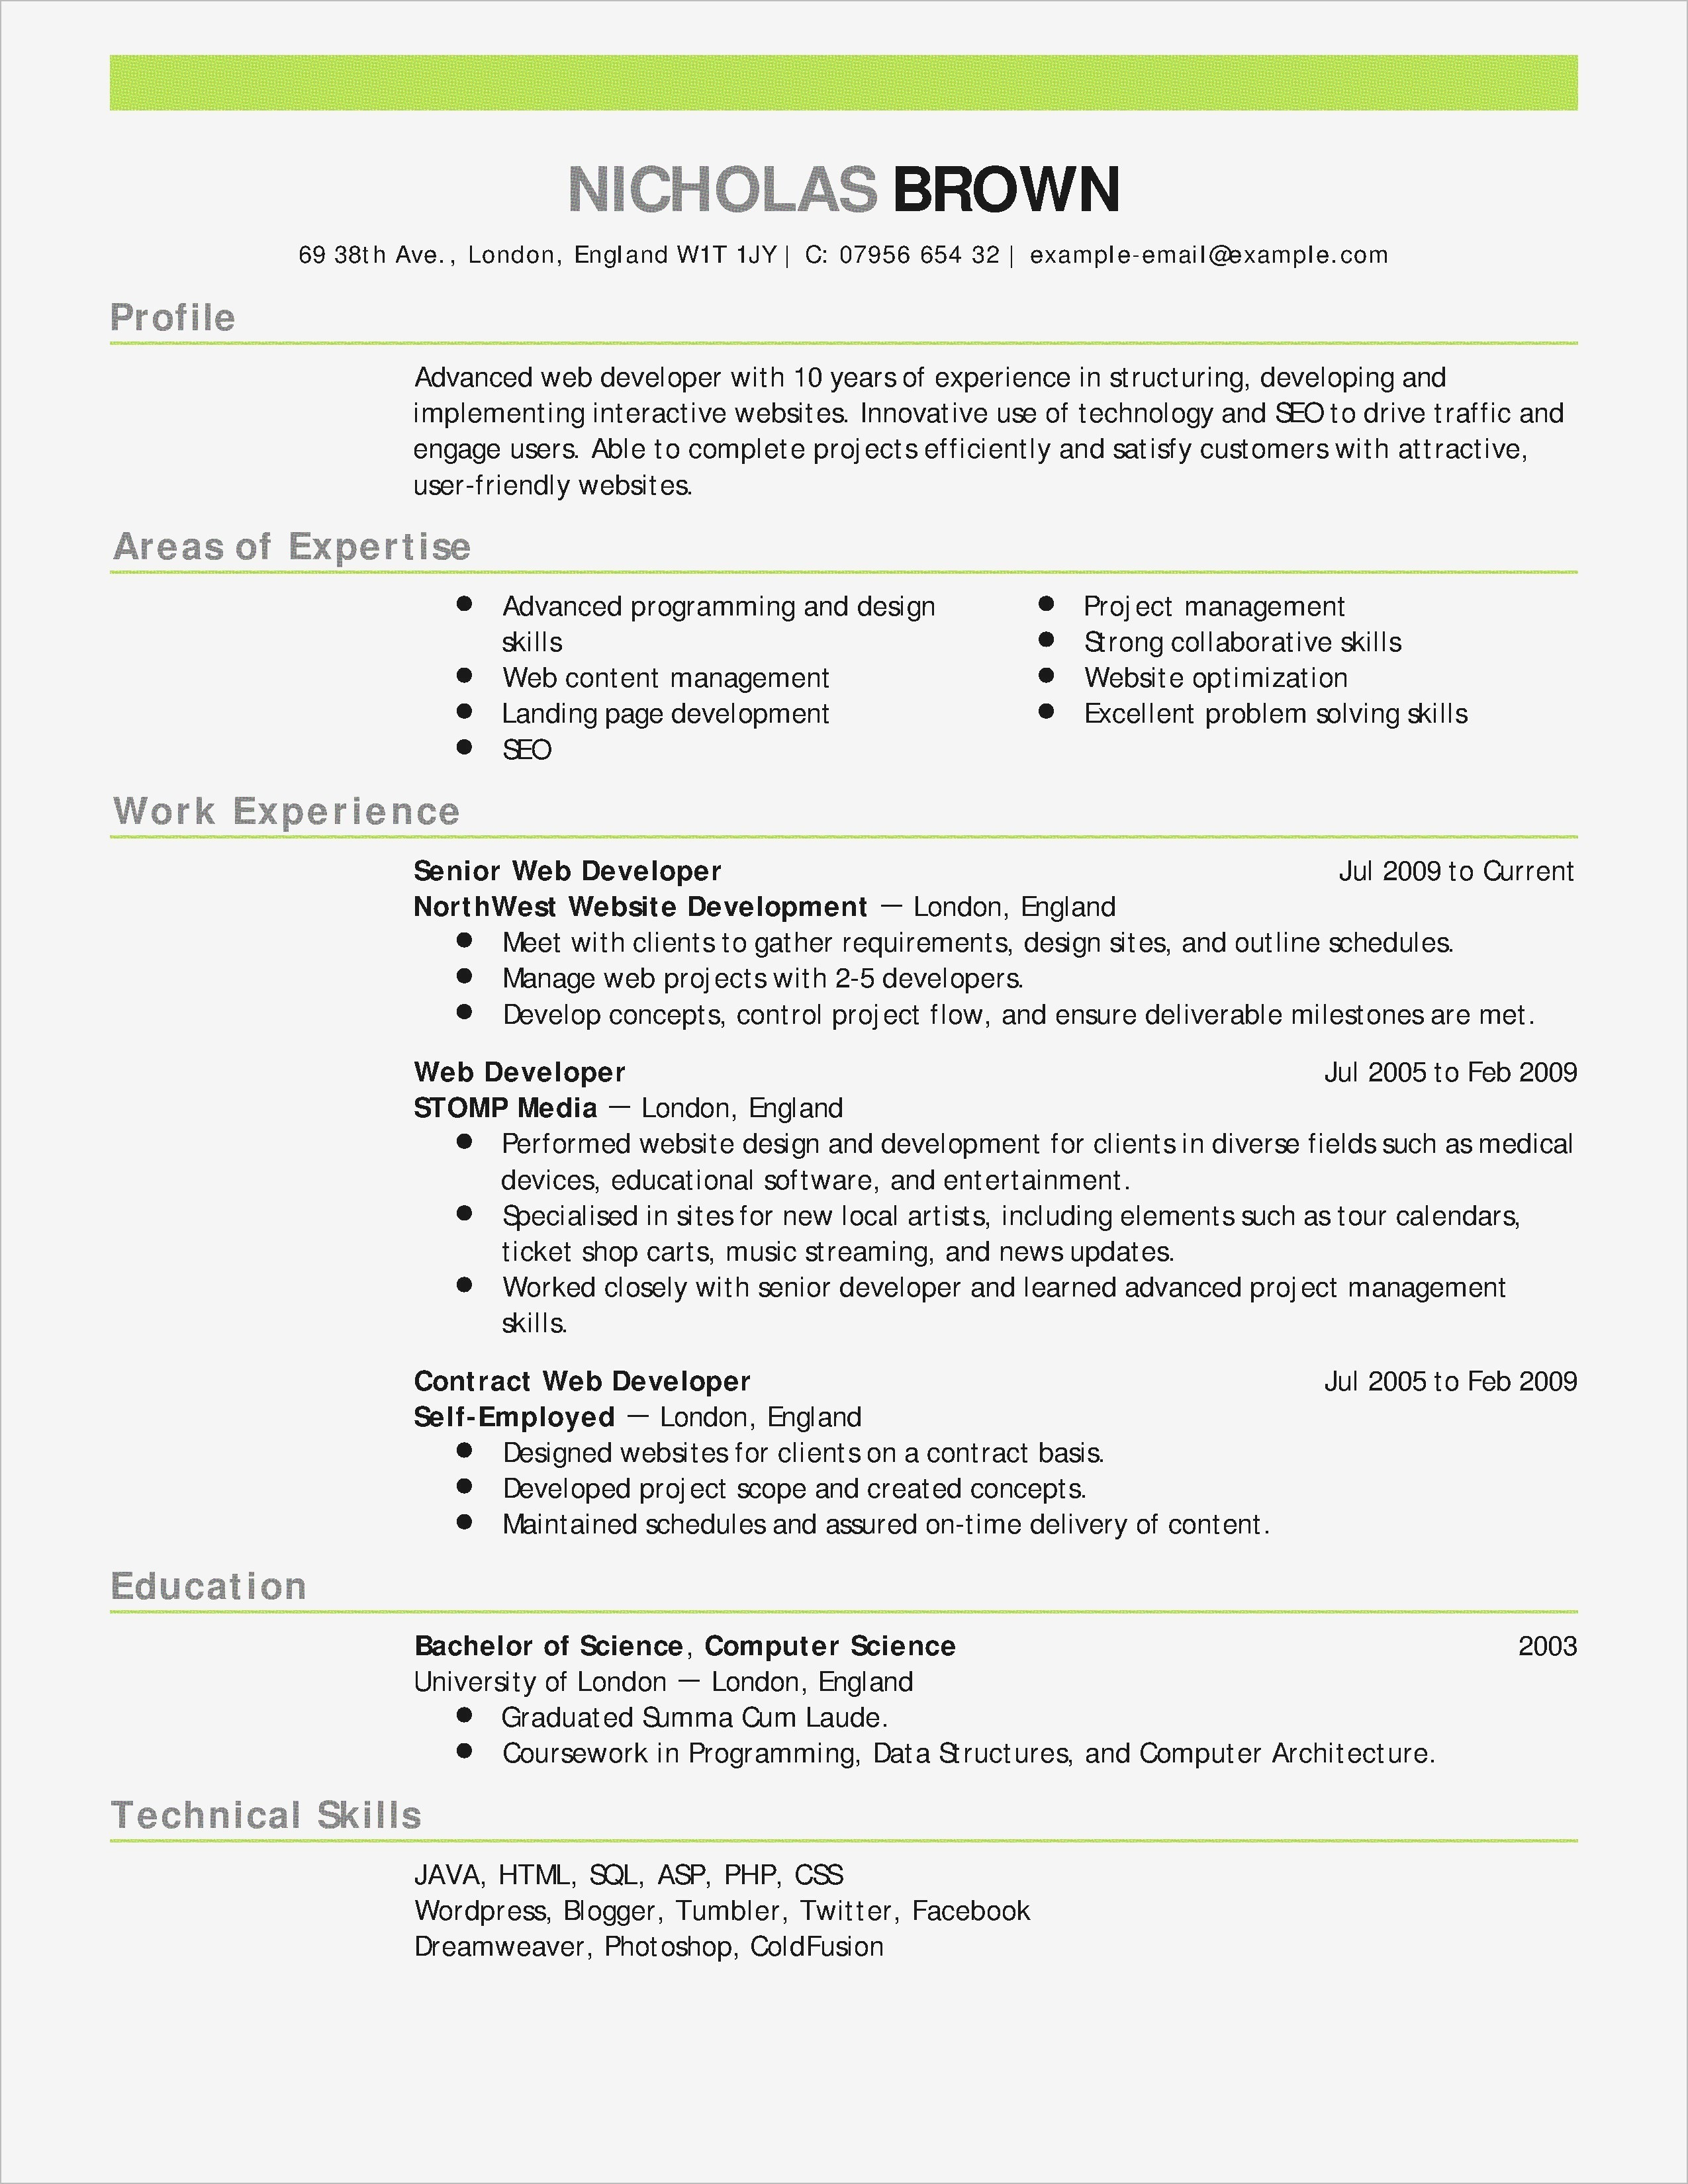 Good Words to Use In A Resume - Words to Use In A Resume Awesome Basic Resume Examples Beautiful